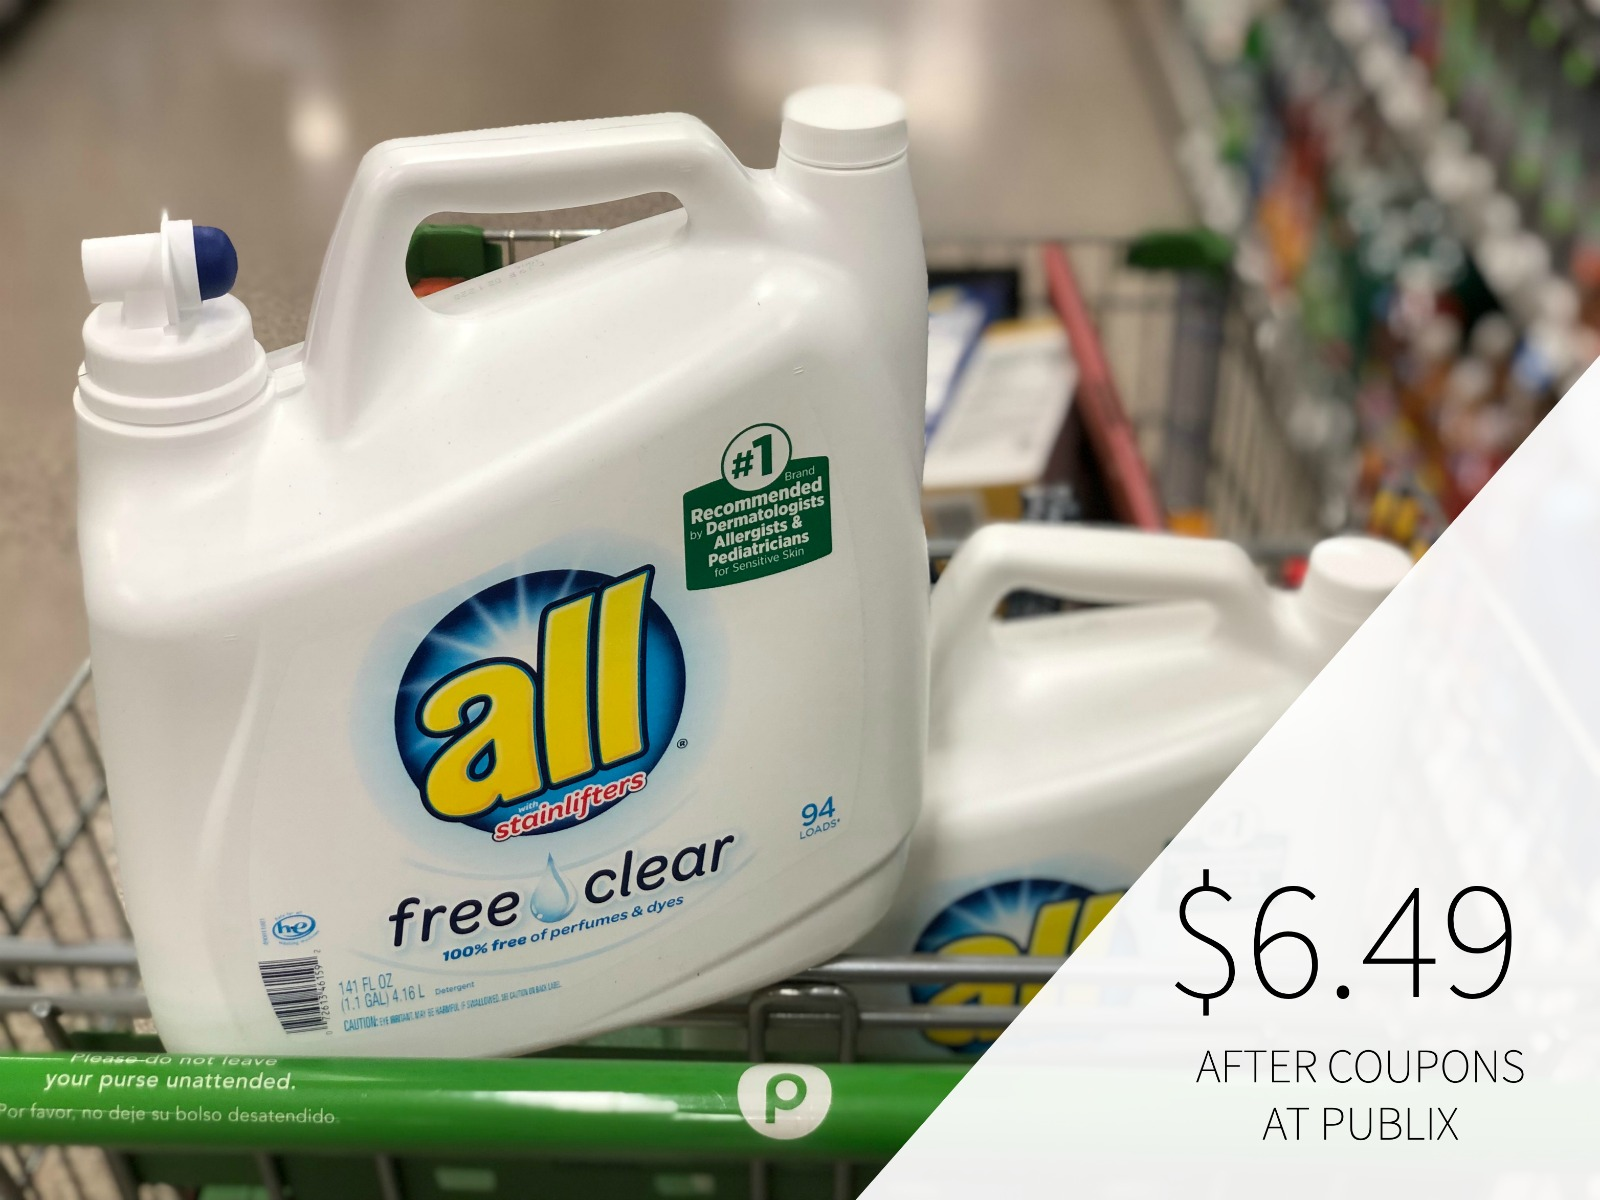 Big Bottles Of All Laundry Detergent Just $5.99 At Publix on I Heart Publix